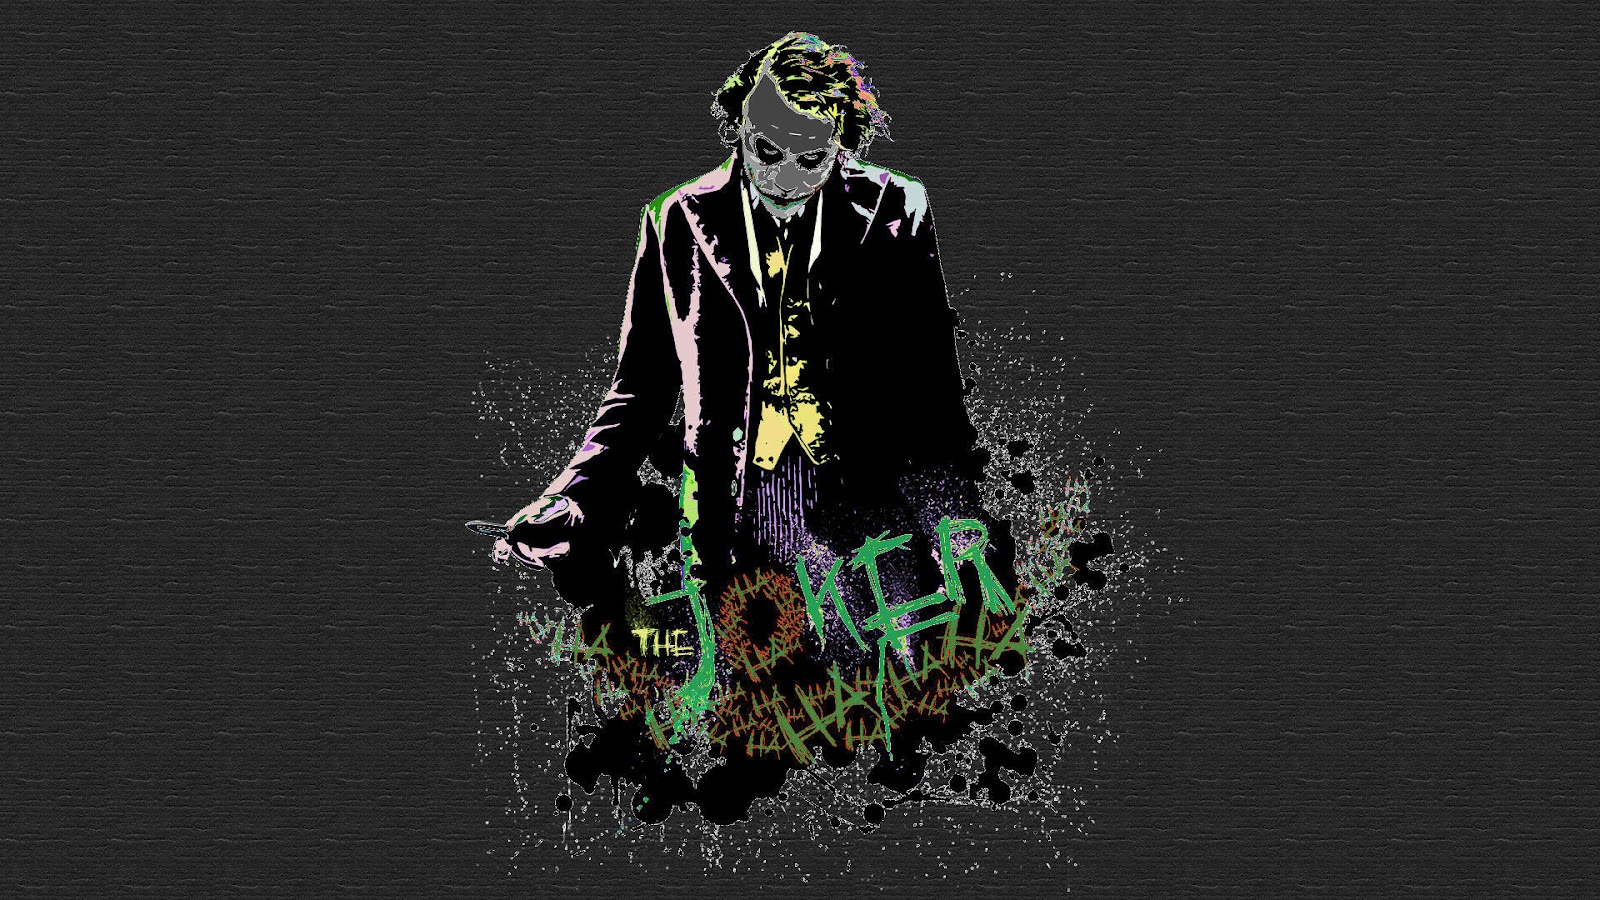 http://2.bp.blogspot.com/-wGNPZanKsTg/UA8j3AKCgdI/AAAAAAAAASQ/W-BNWG_1Ggw/s1600/batman_the_joker_heath_ledger_desktop_1920x1080_wallpaper-10.jpg